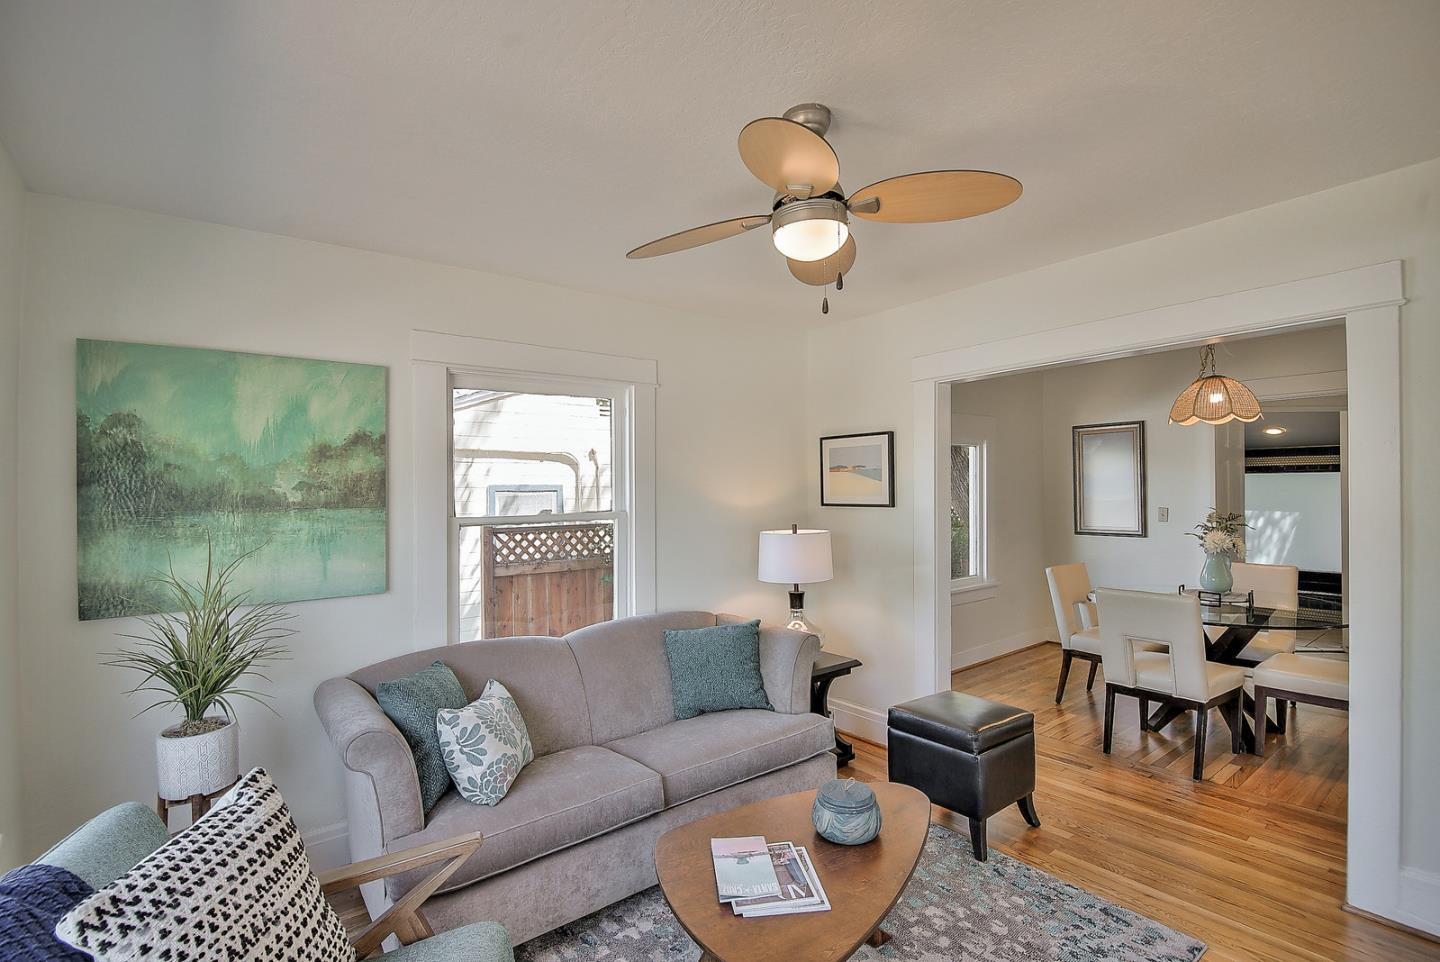 Amazing opportunity to own a fantastic property on Laurent Street in Santa Cruz. This home has been in the same family for generations. The charming Santa Cruz bungalow features newly refinished hardwood flooring, a brand new kitchen, and a new bathroom vanity. There's also an abundance of storage including a large attic space. The LEGAL detached guest unit is complete with a full kitchen and bathroom. There's also a large detached garage with three large storage areas inside as well as a full sized room on the second floor with it's own entrance. The 7,275 square foot parcel parcel backs up to Trescony Park, a popular community garden with a playground. Easy access to commute routes, UCSC, the coast, downtown, and walkable to restaurants and breweries.